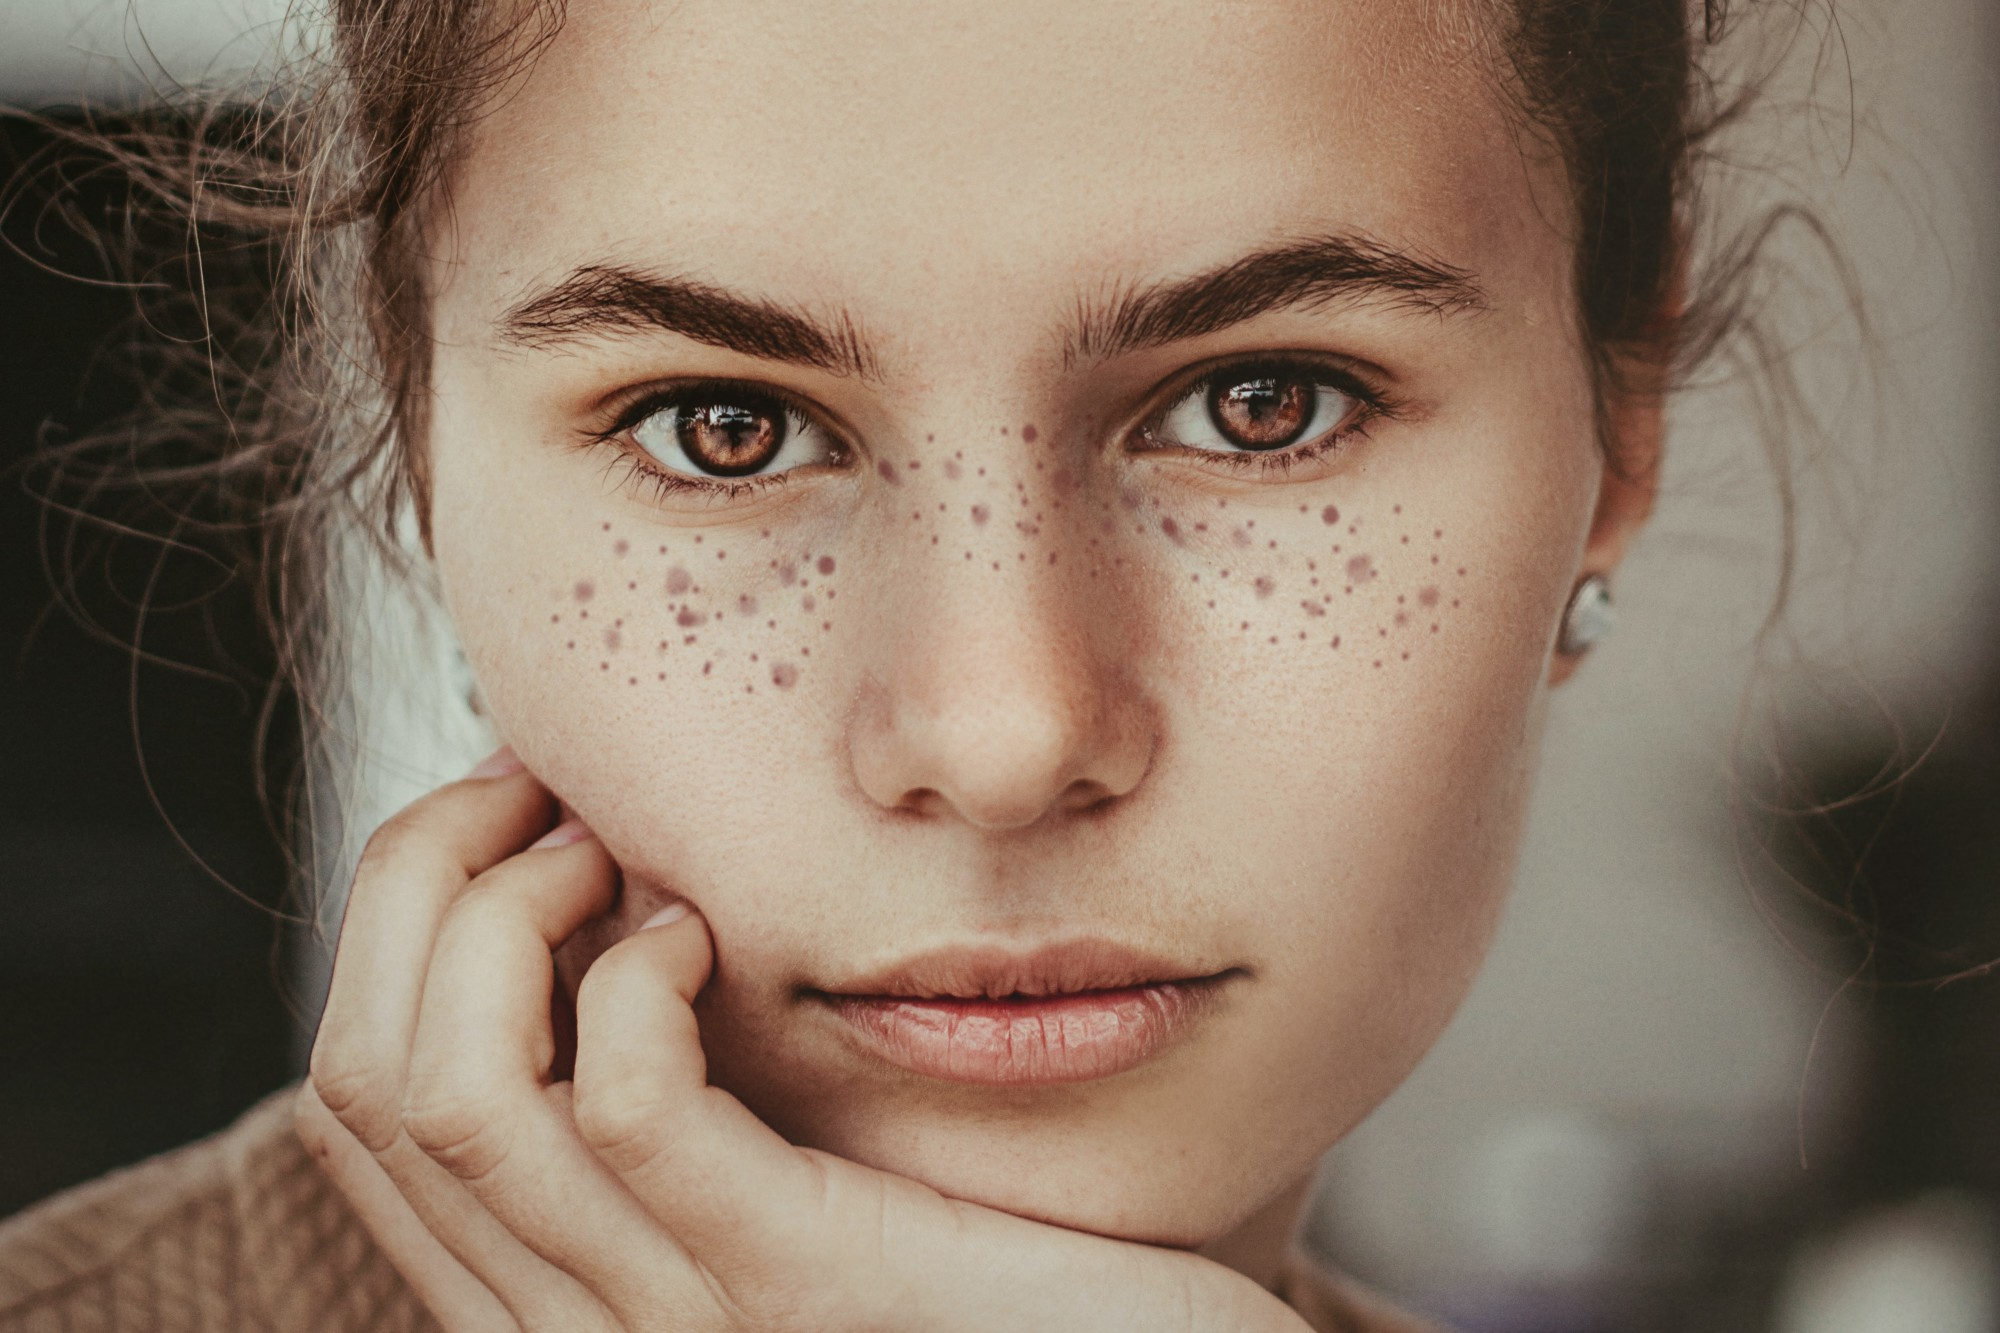 Portrait of a woman showing off her unique freckly features